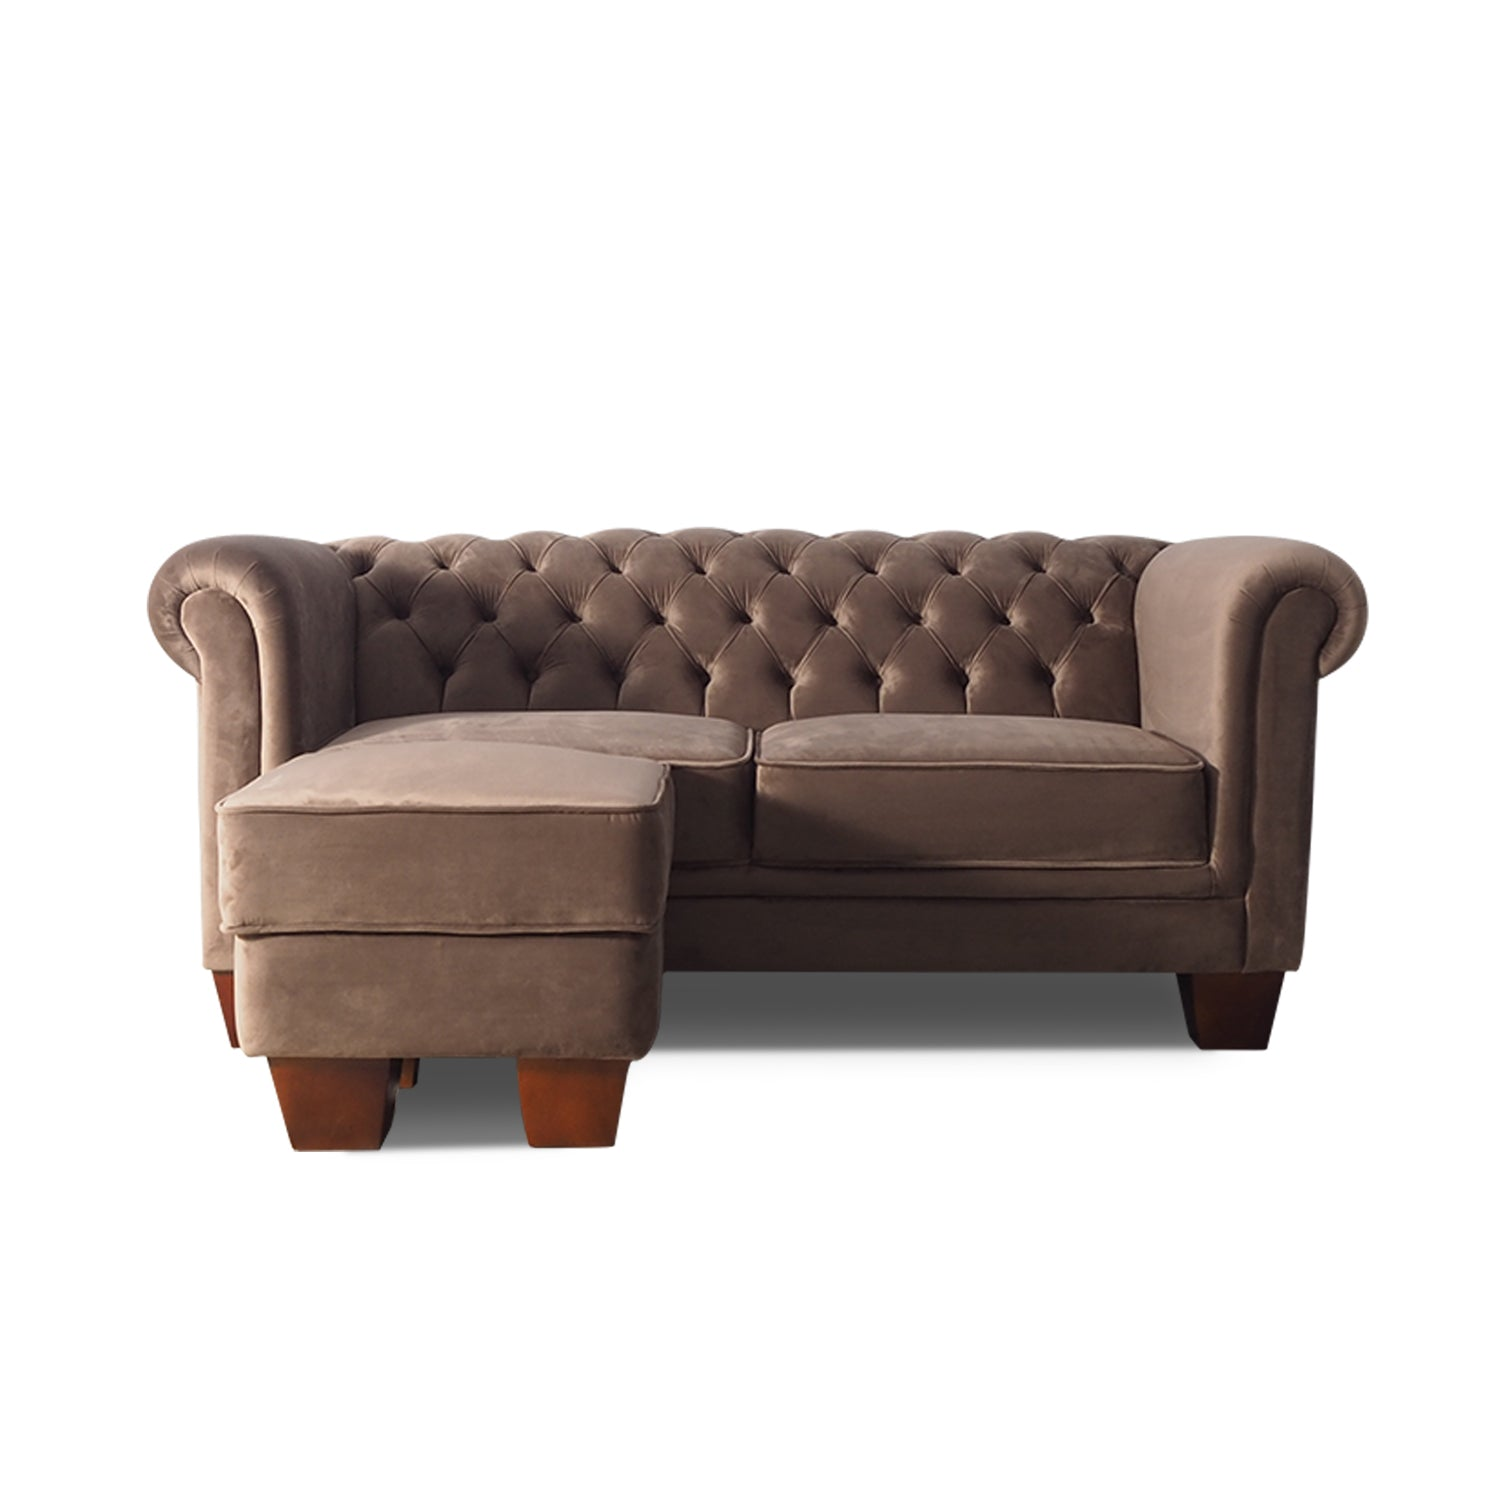 Sofa Chesterfield L